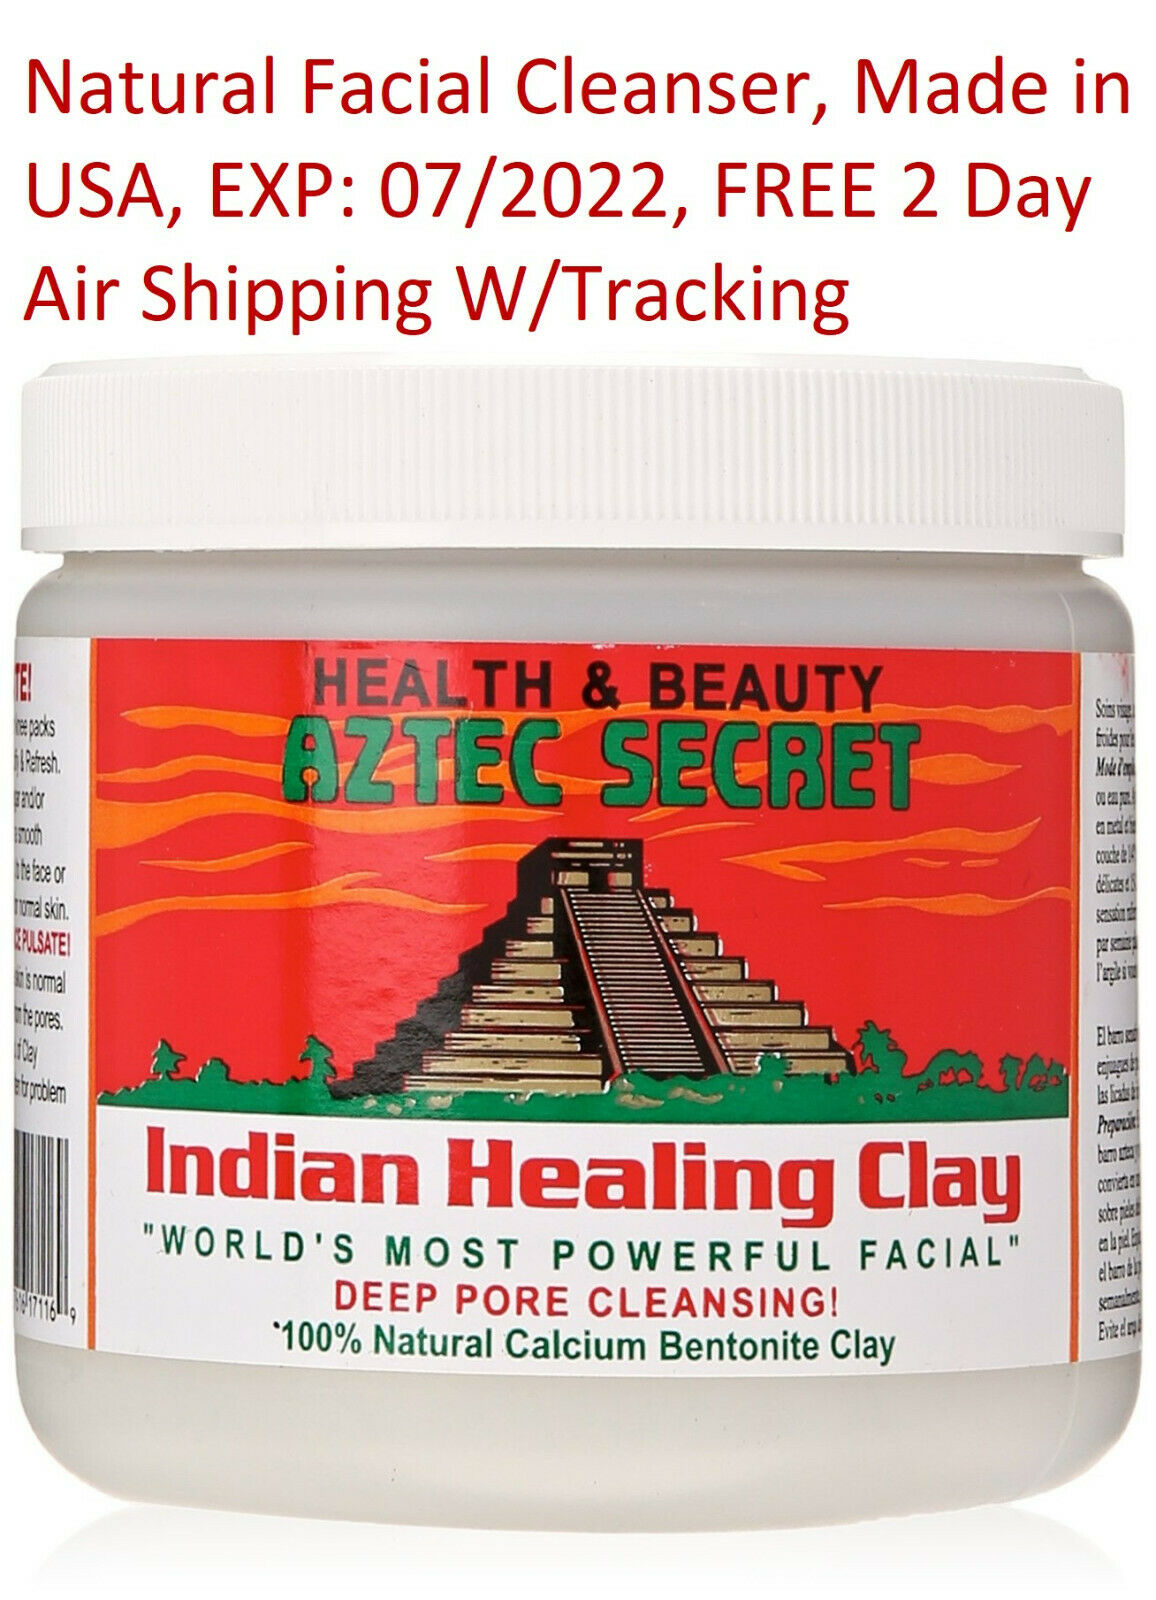 Aztek Secret - Indian Healing Clay Deep Pore Cleansing Facia